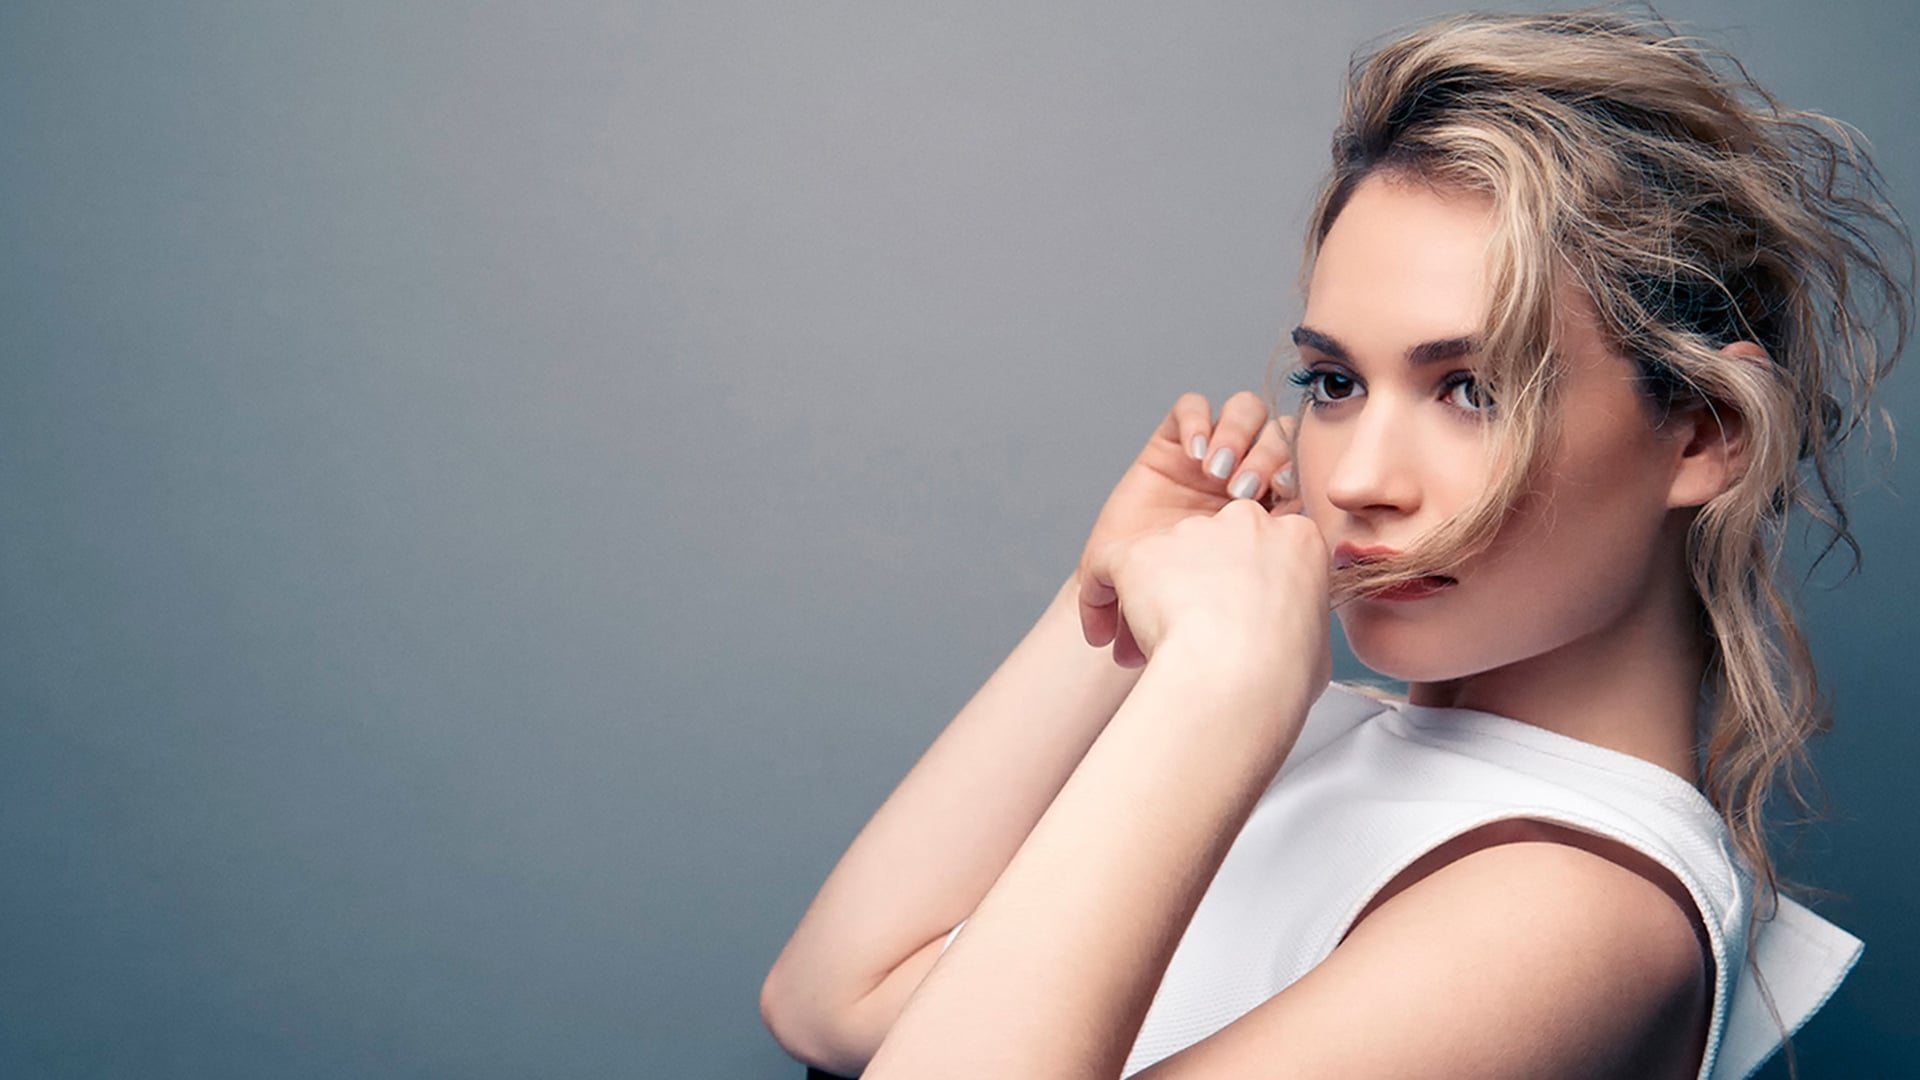 Lily James wallpapers HD Download 1920x1080